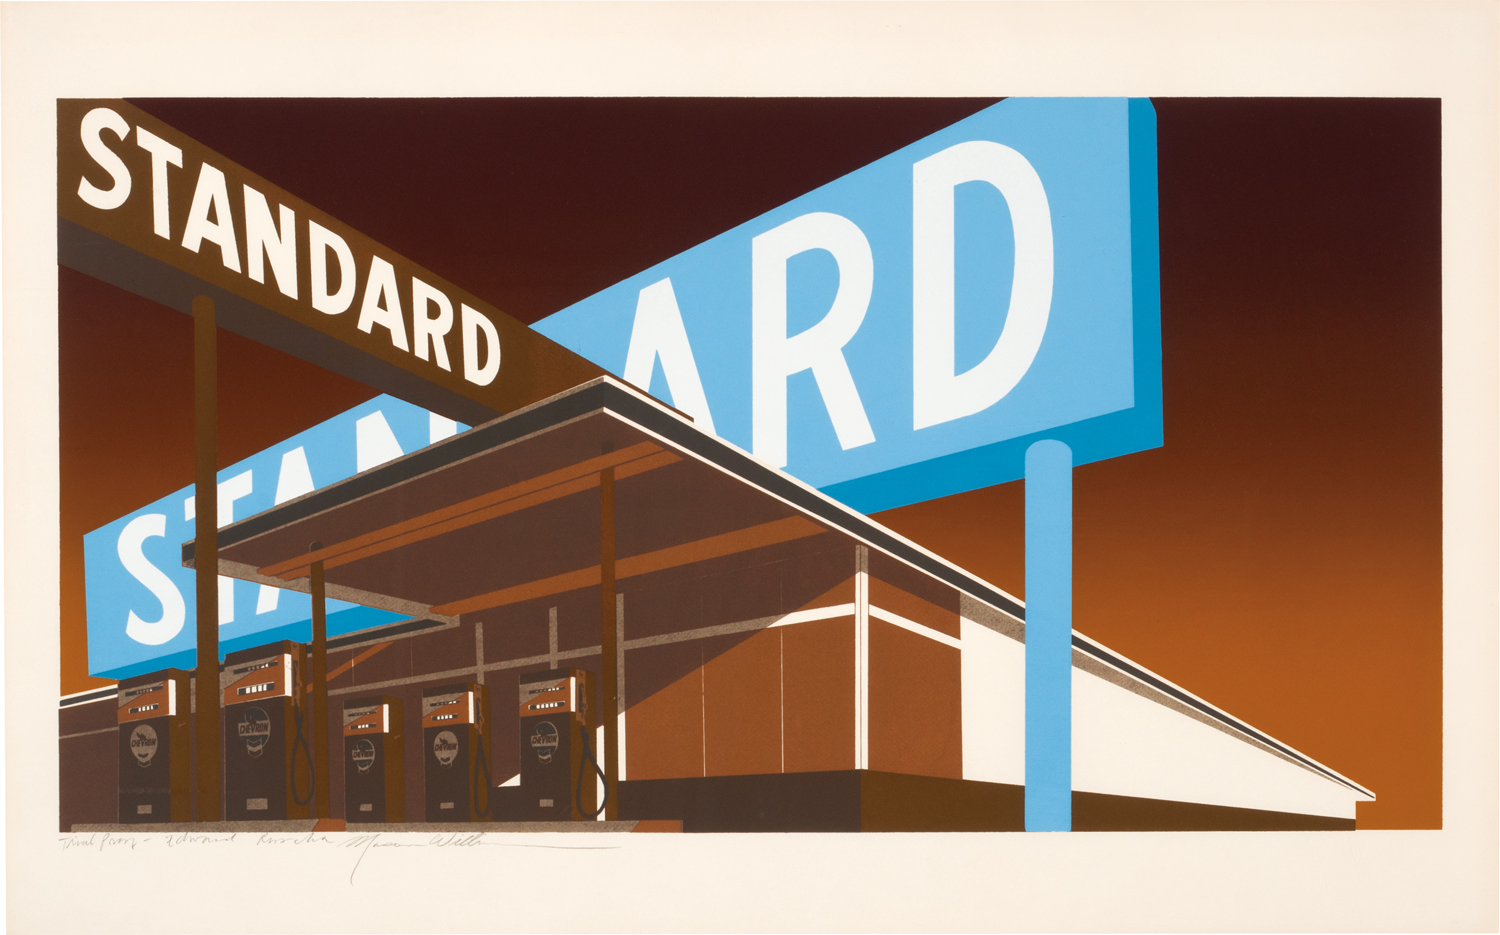 Double Standard, a 1969 screenprint by Ed Ruscha. Los Angeles Modern Auctions (LAMA) set a record for a print by the artist in October 2014 when it sold for $206,250 against an estimate of $50,000 to $70,000.